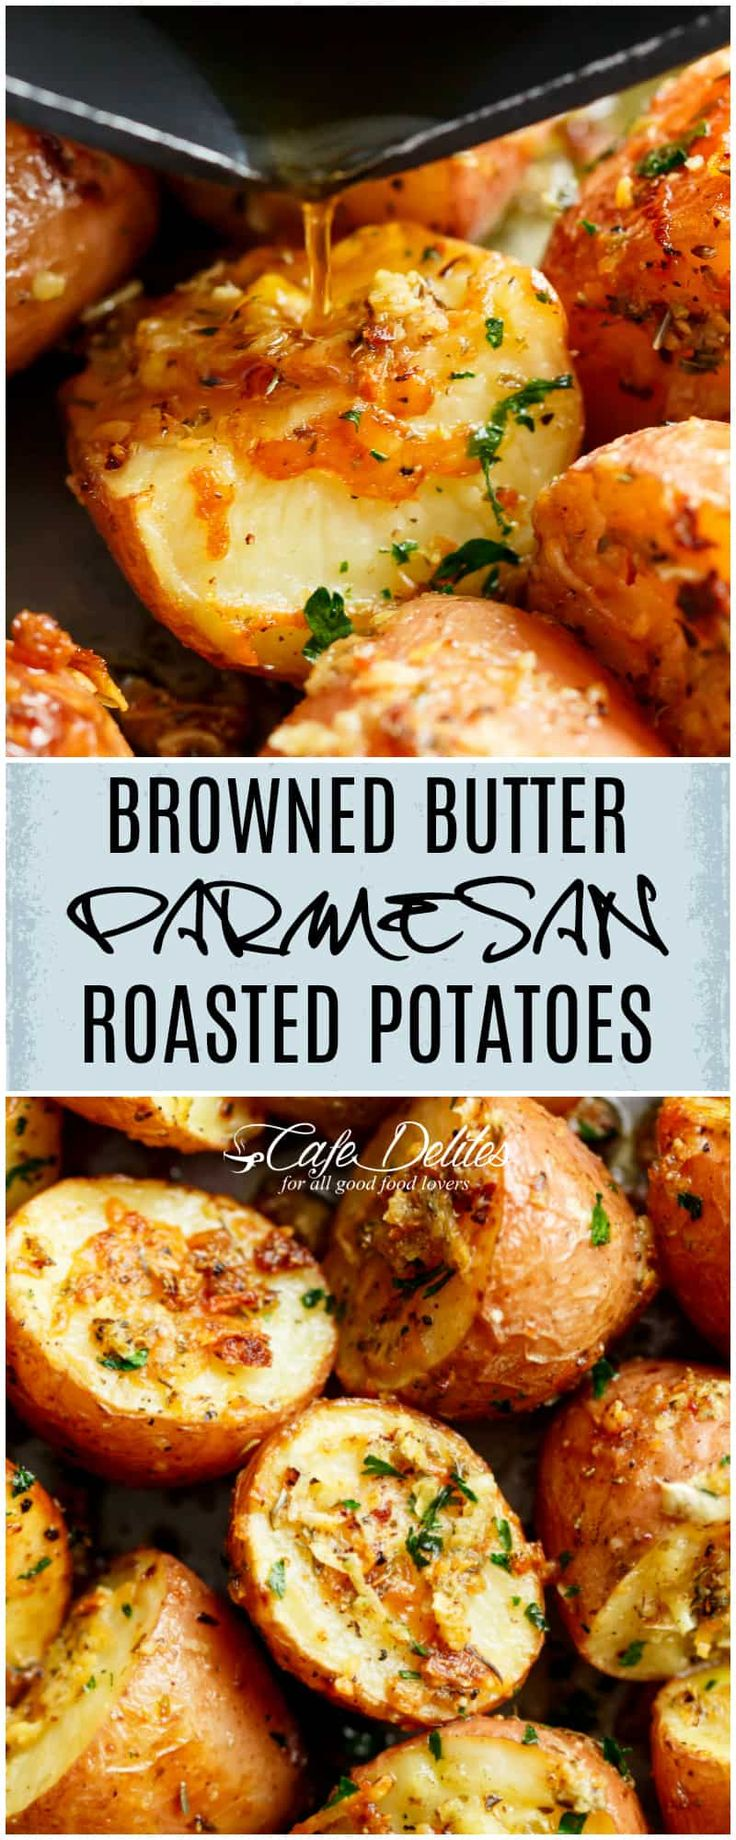 Herbs,garlic, and parmesan cheese are roastedtogether to make the best Crispy Browned Butter Parmesan Roasted Potatoes! Perfect with ANYTHING!